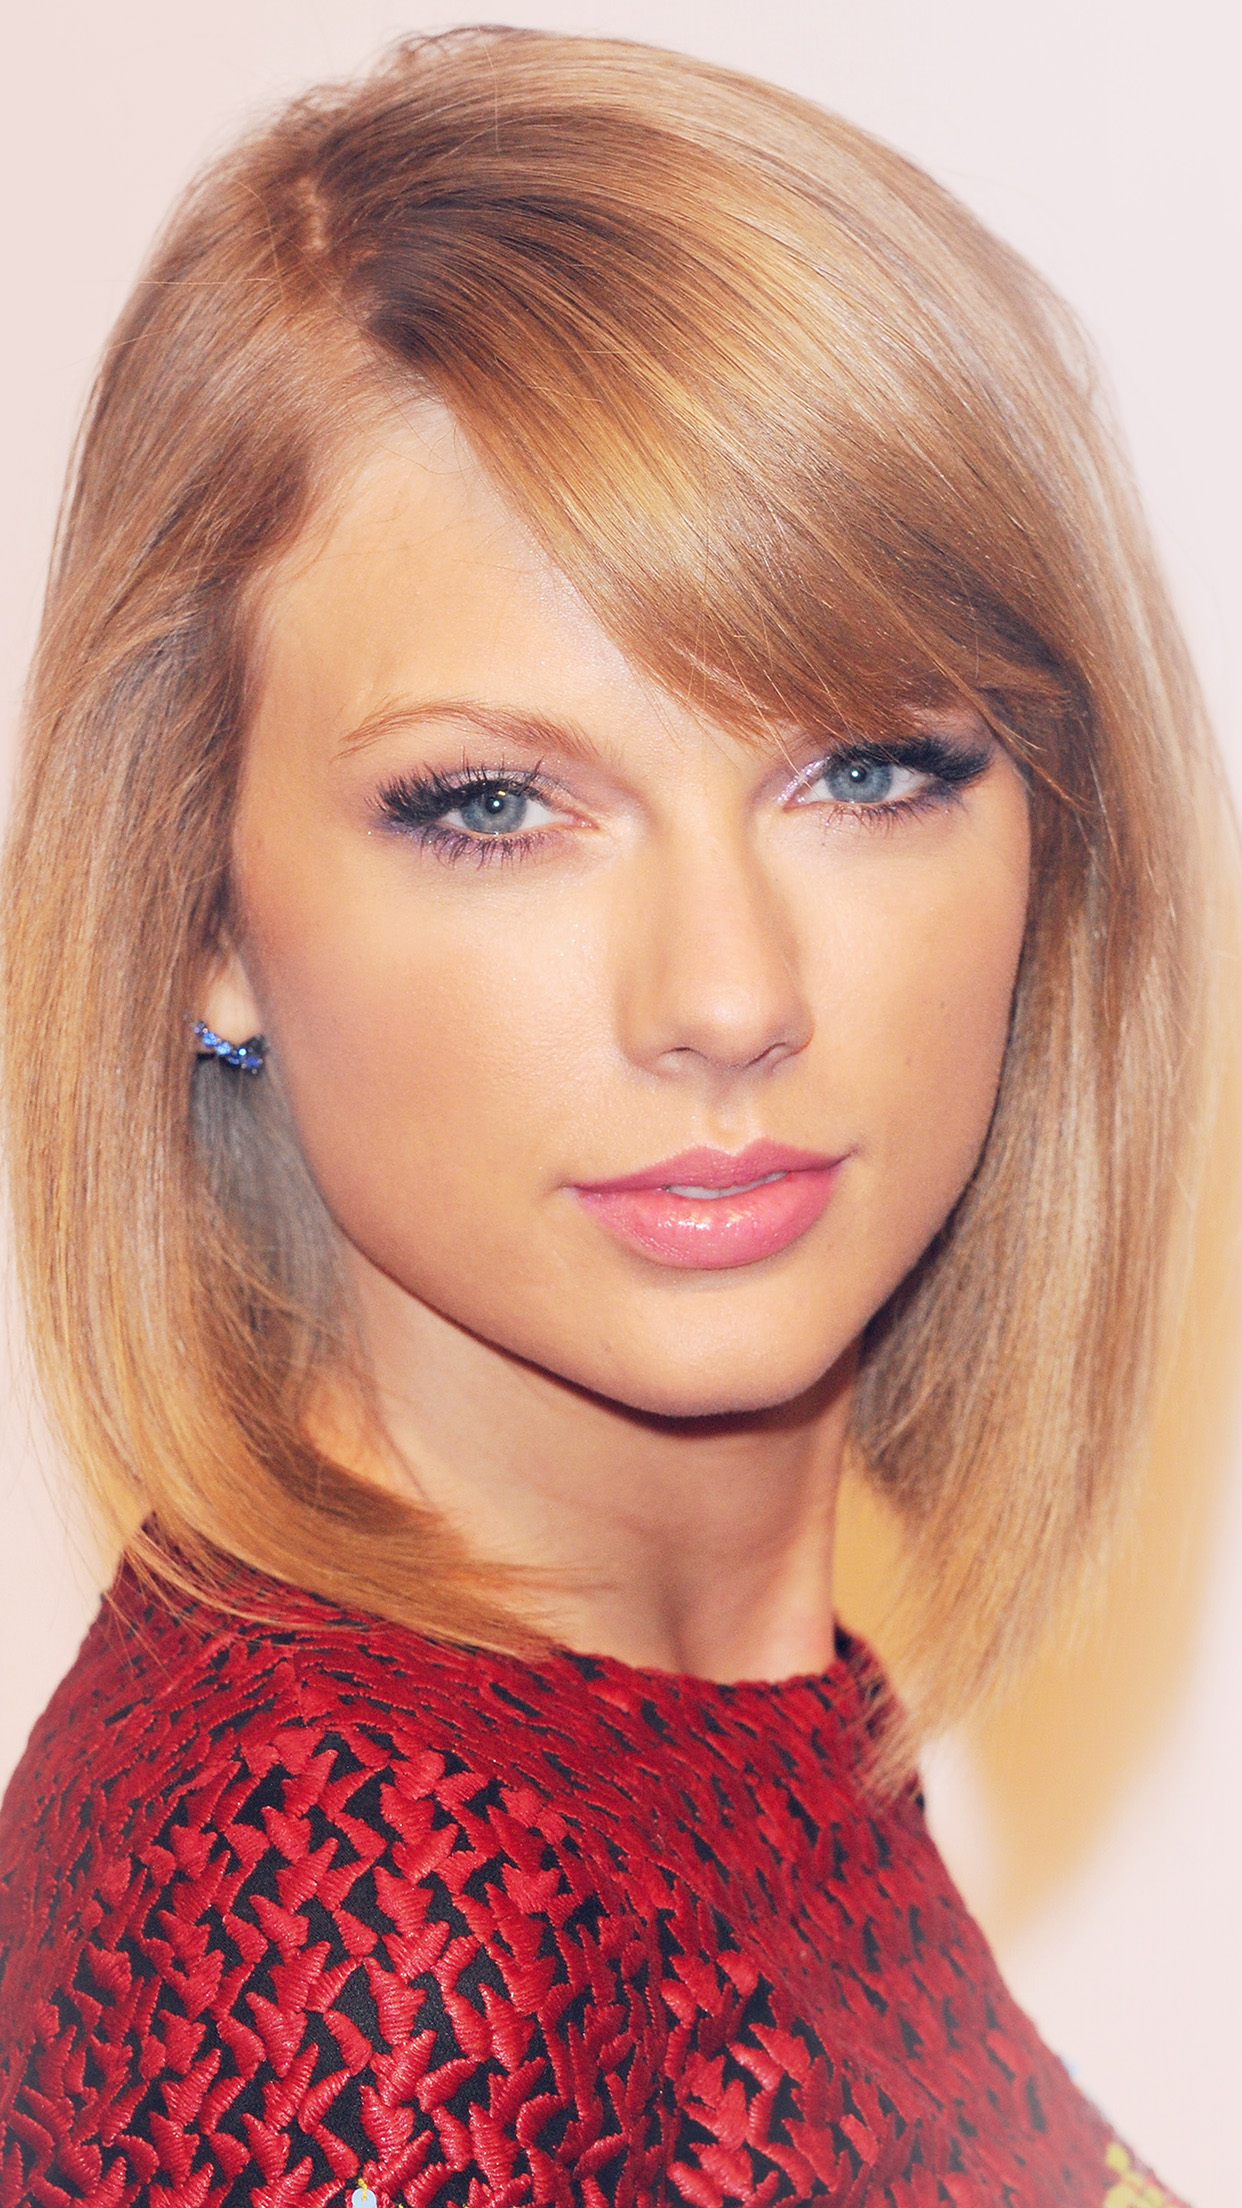 Taylor Swift Face Cute Beautiful Singer Android wallpaper